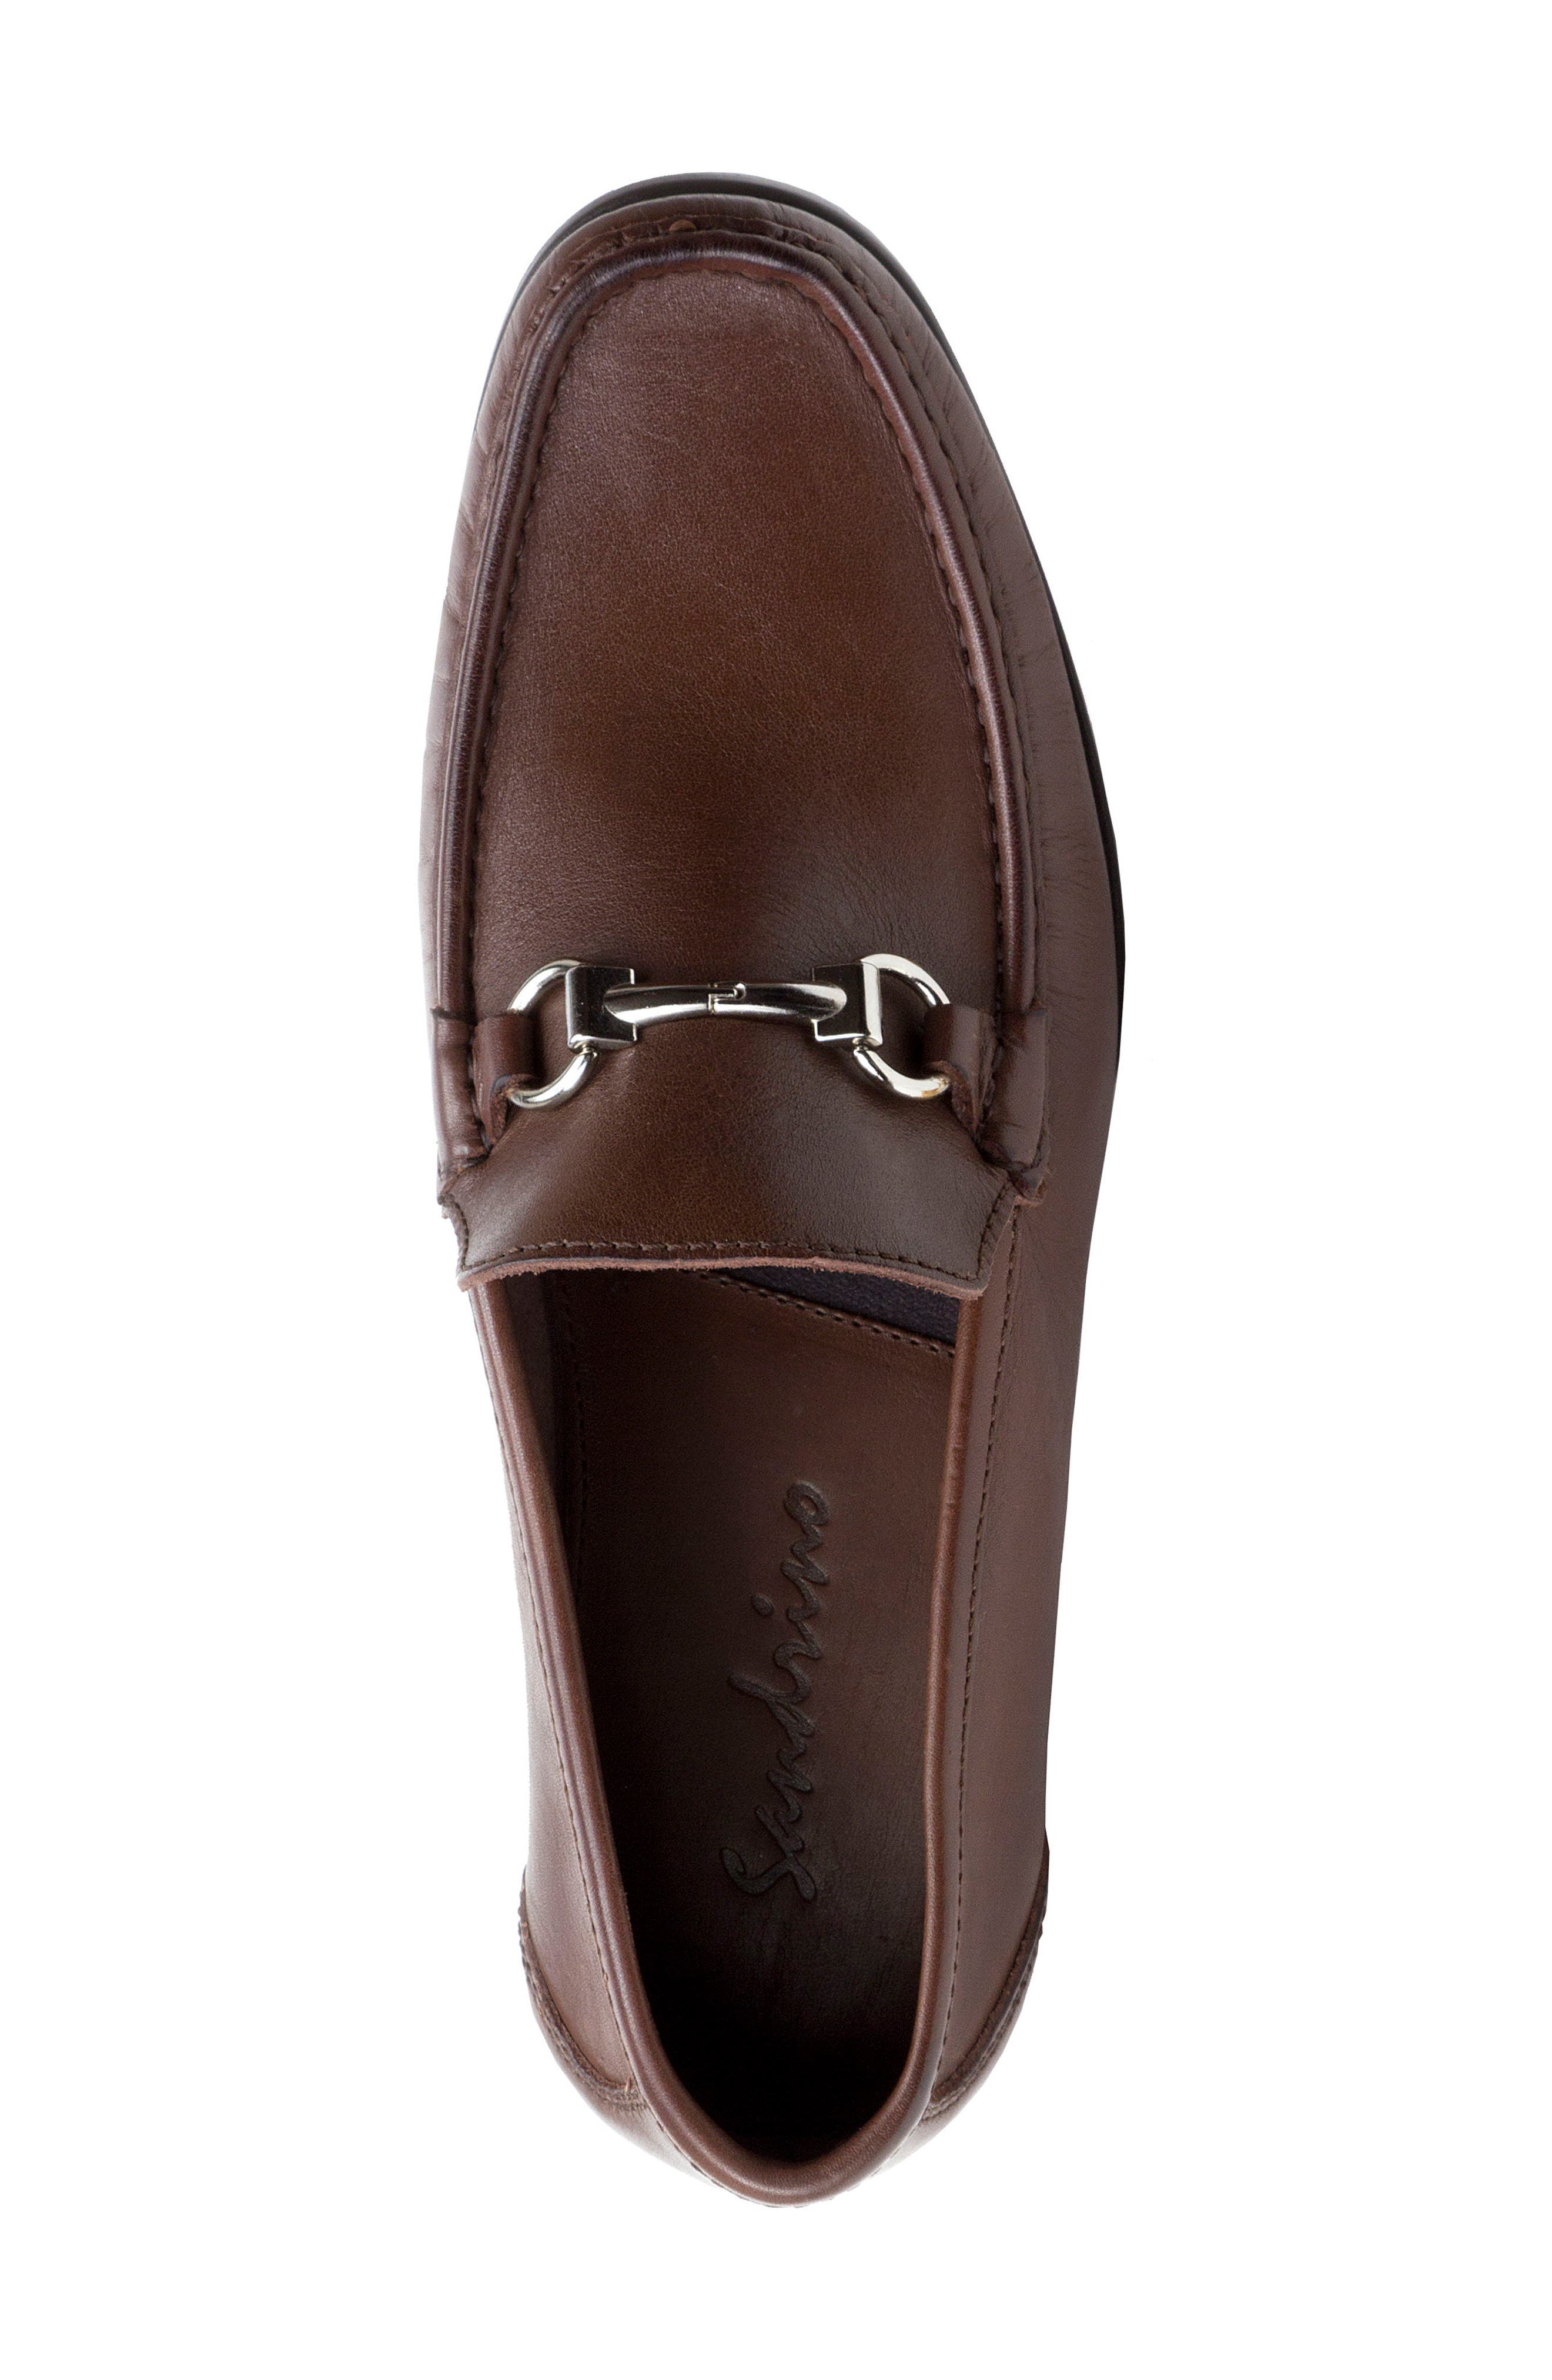 'Malibu' Suede Bit Loafer,                             Alternate thumbnail 5, color,                             Brown Leather